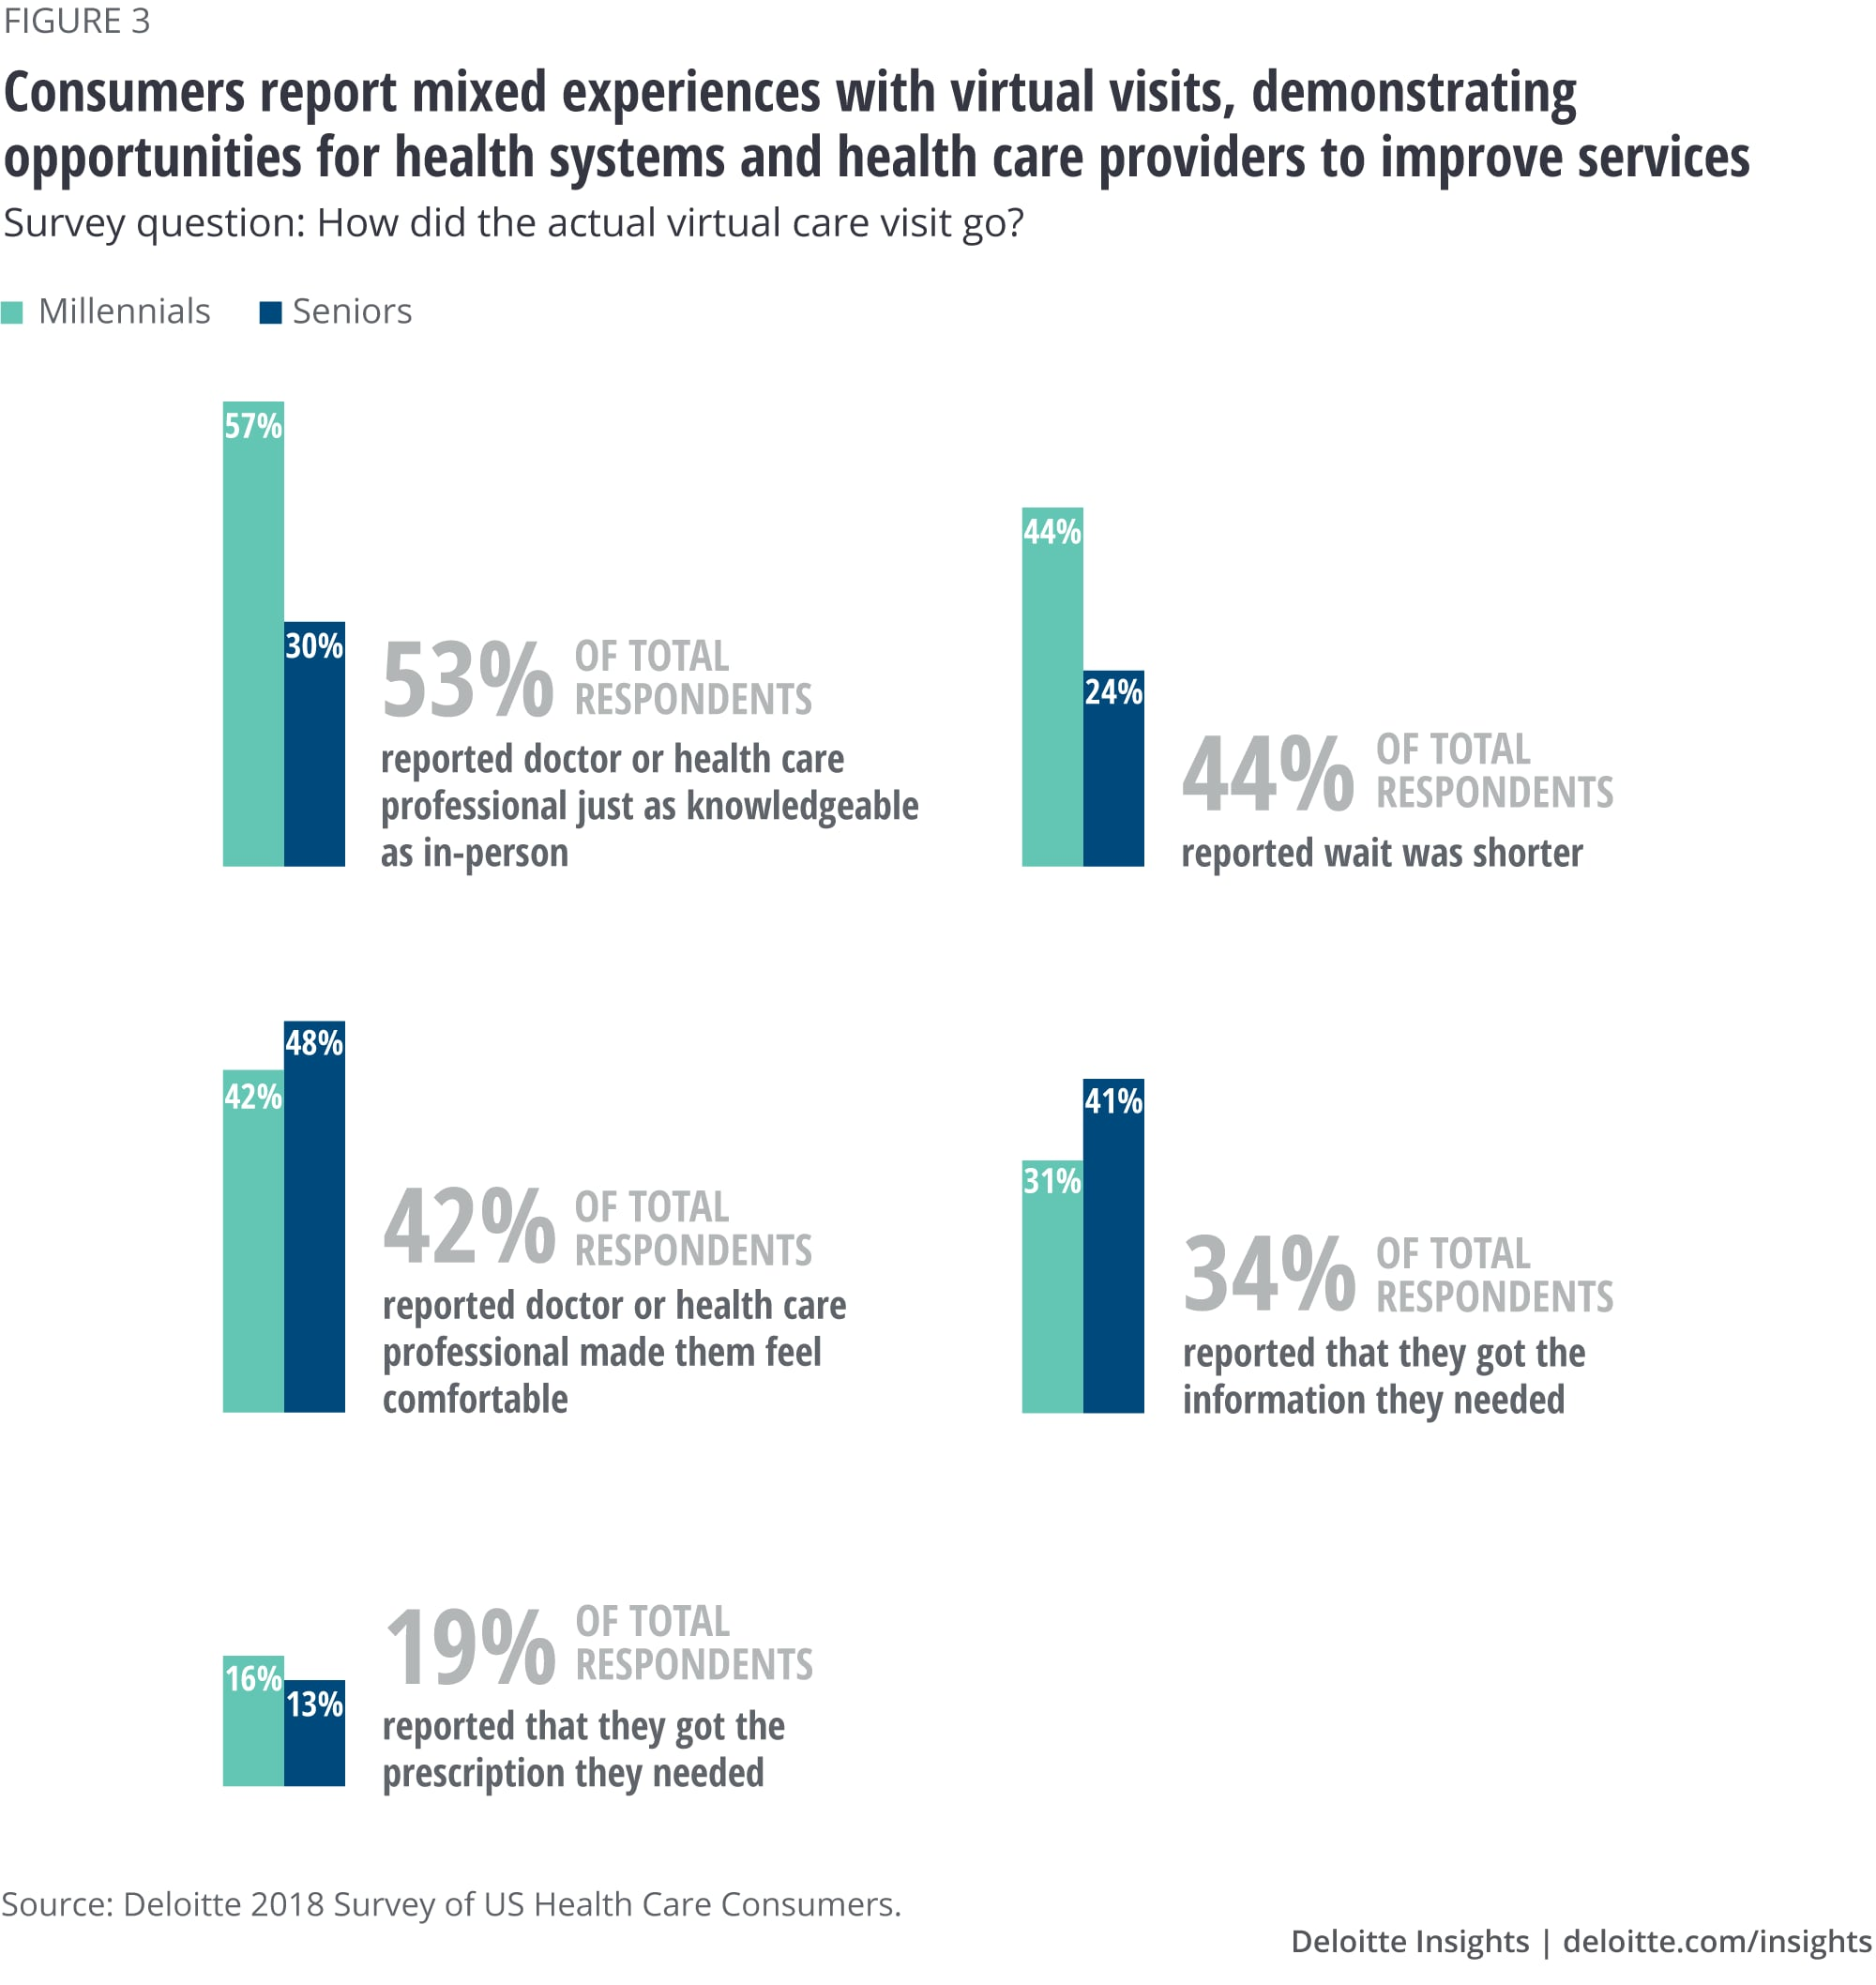 Consumers report mixed experiences with virtual visits, demonstrating opportunities for health systems and health care providers to improve services